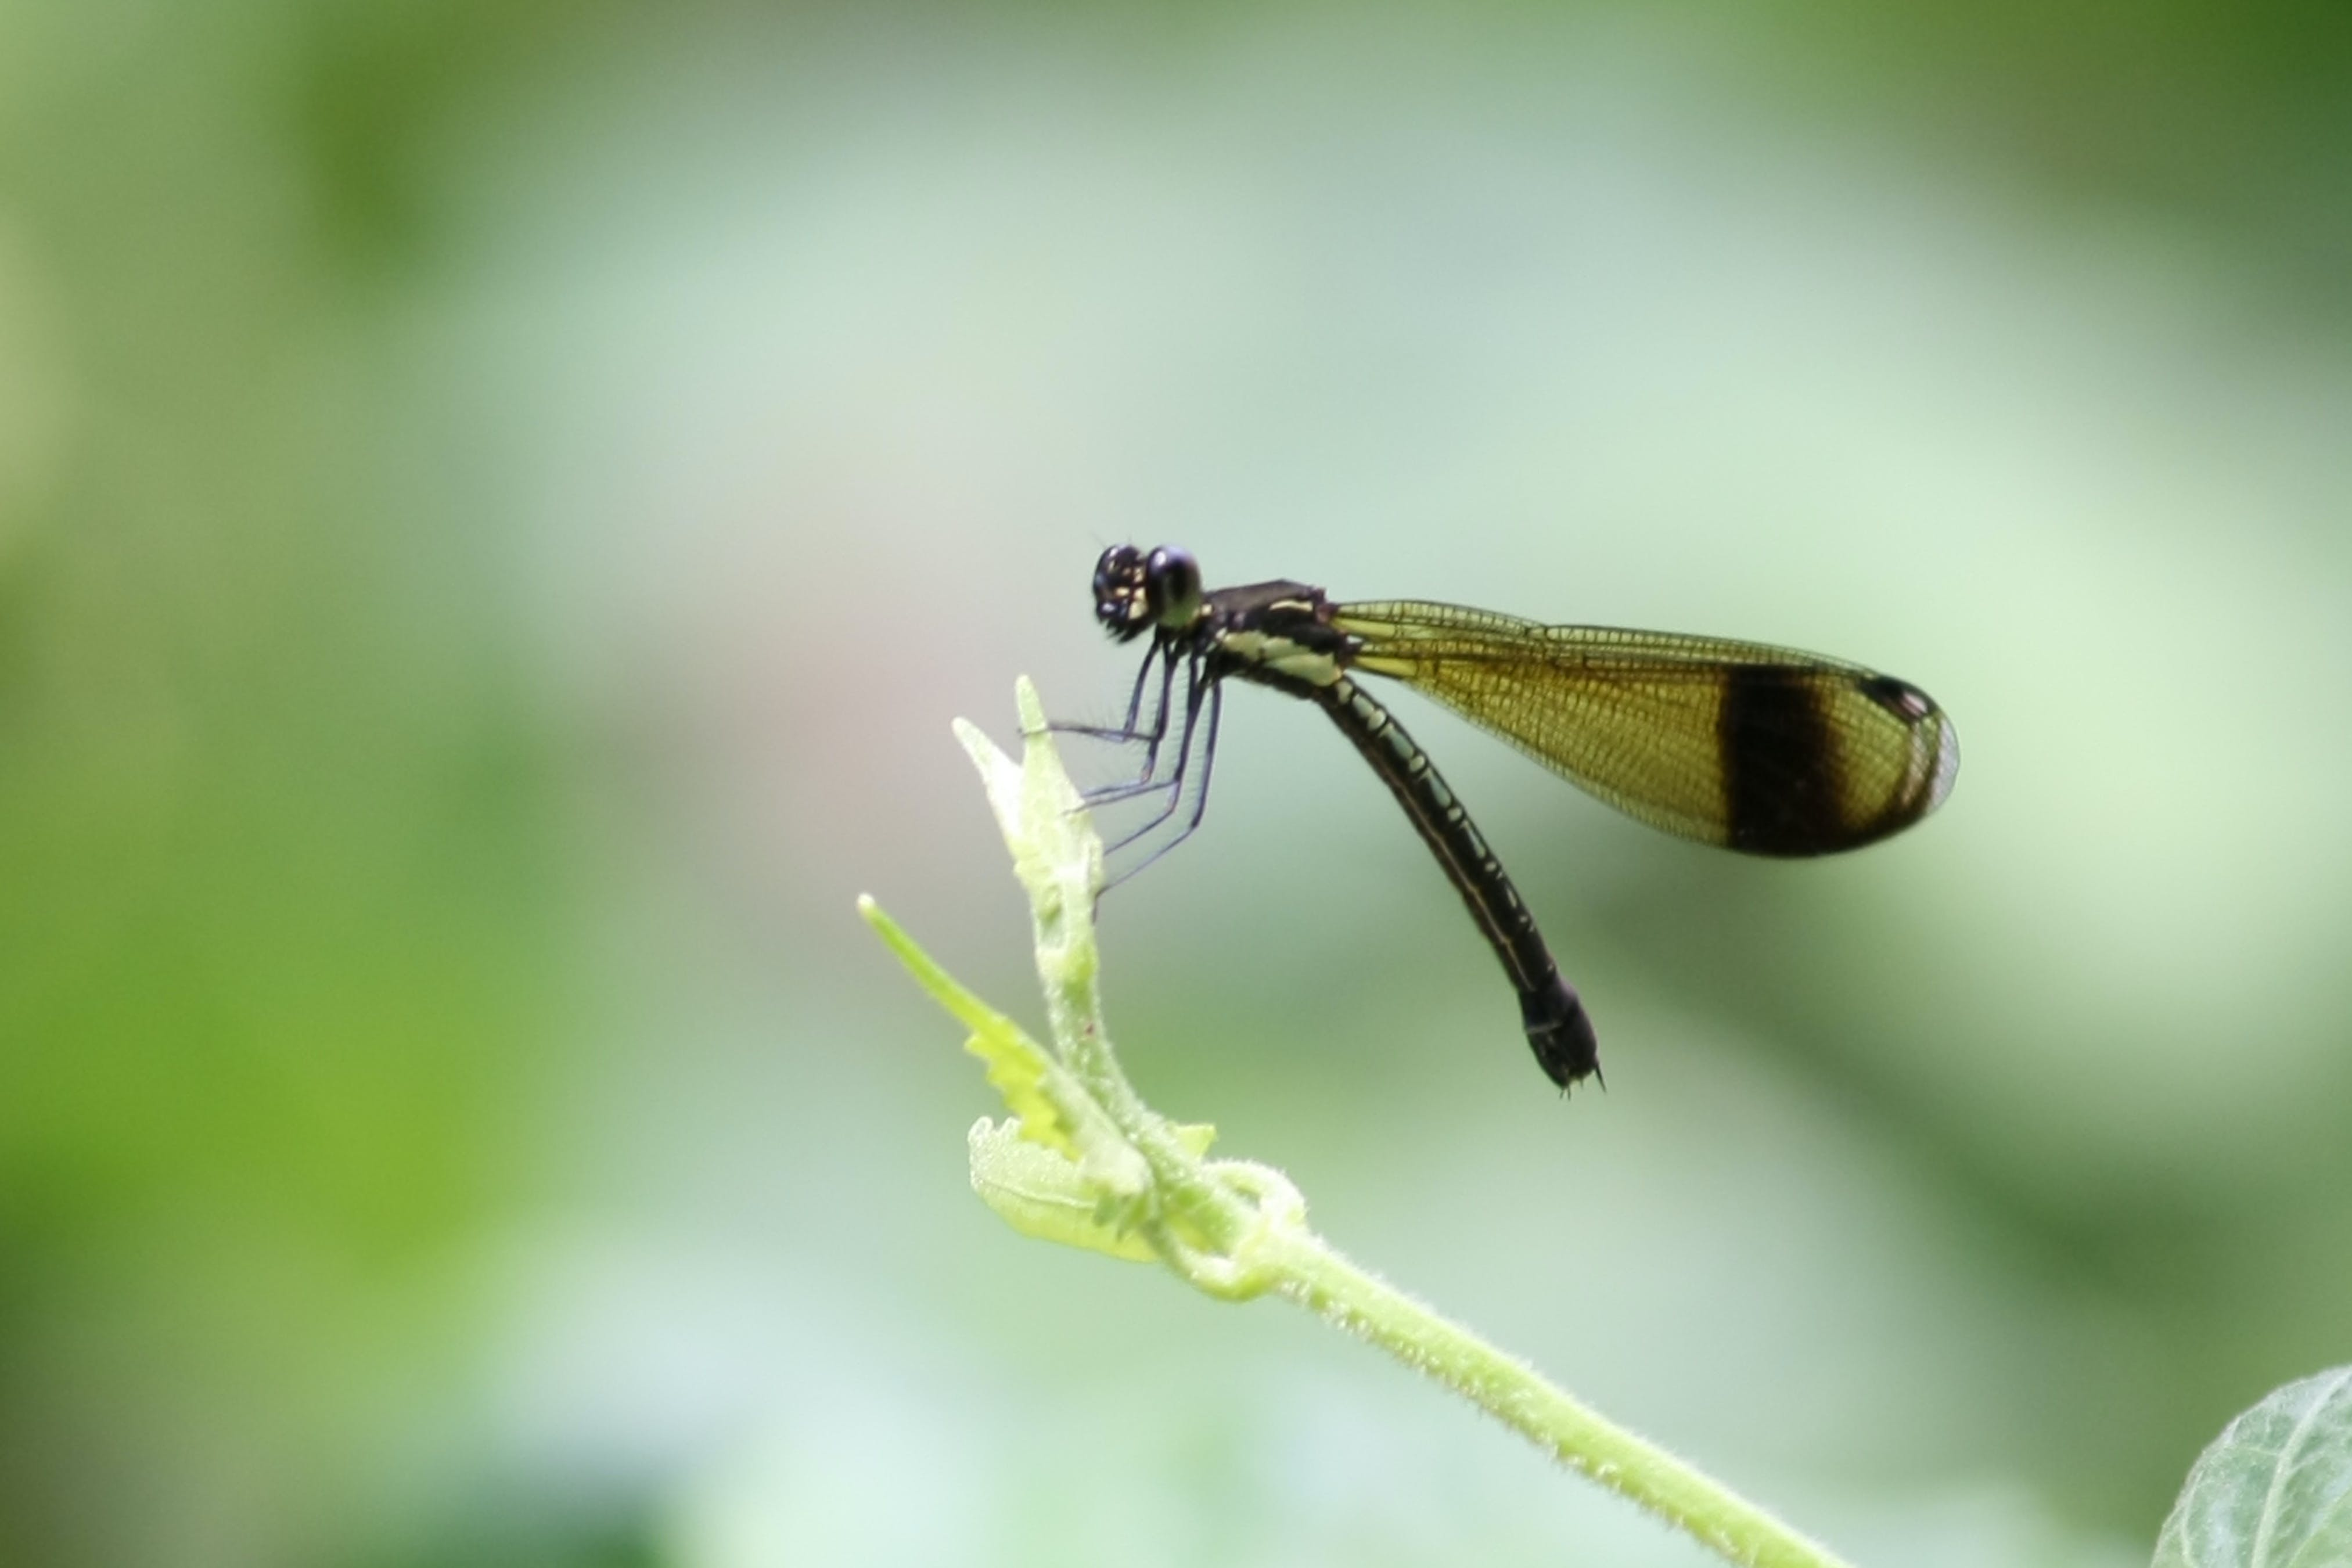 Green Dragonfly on Green Leaf during Daytime